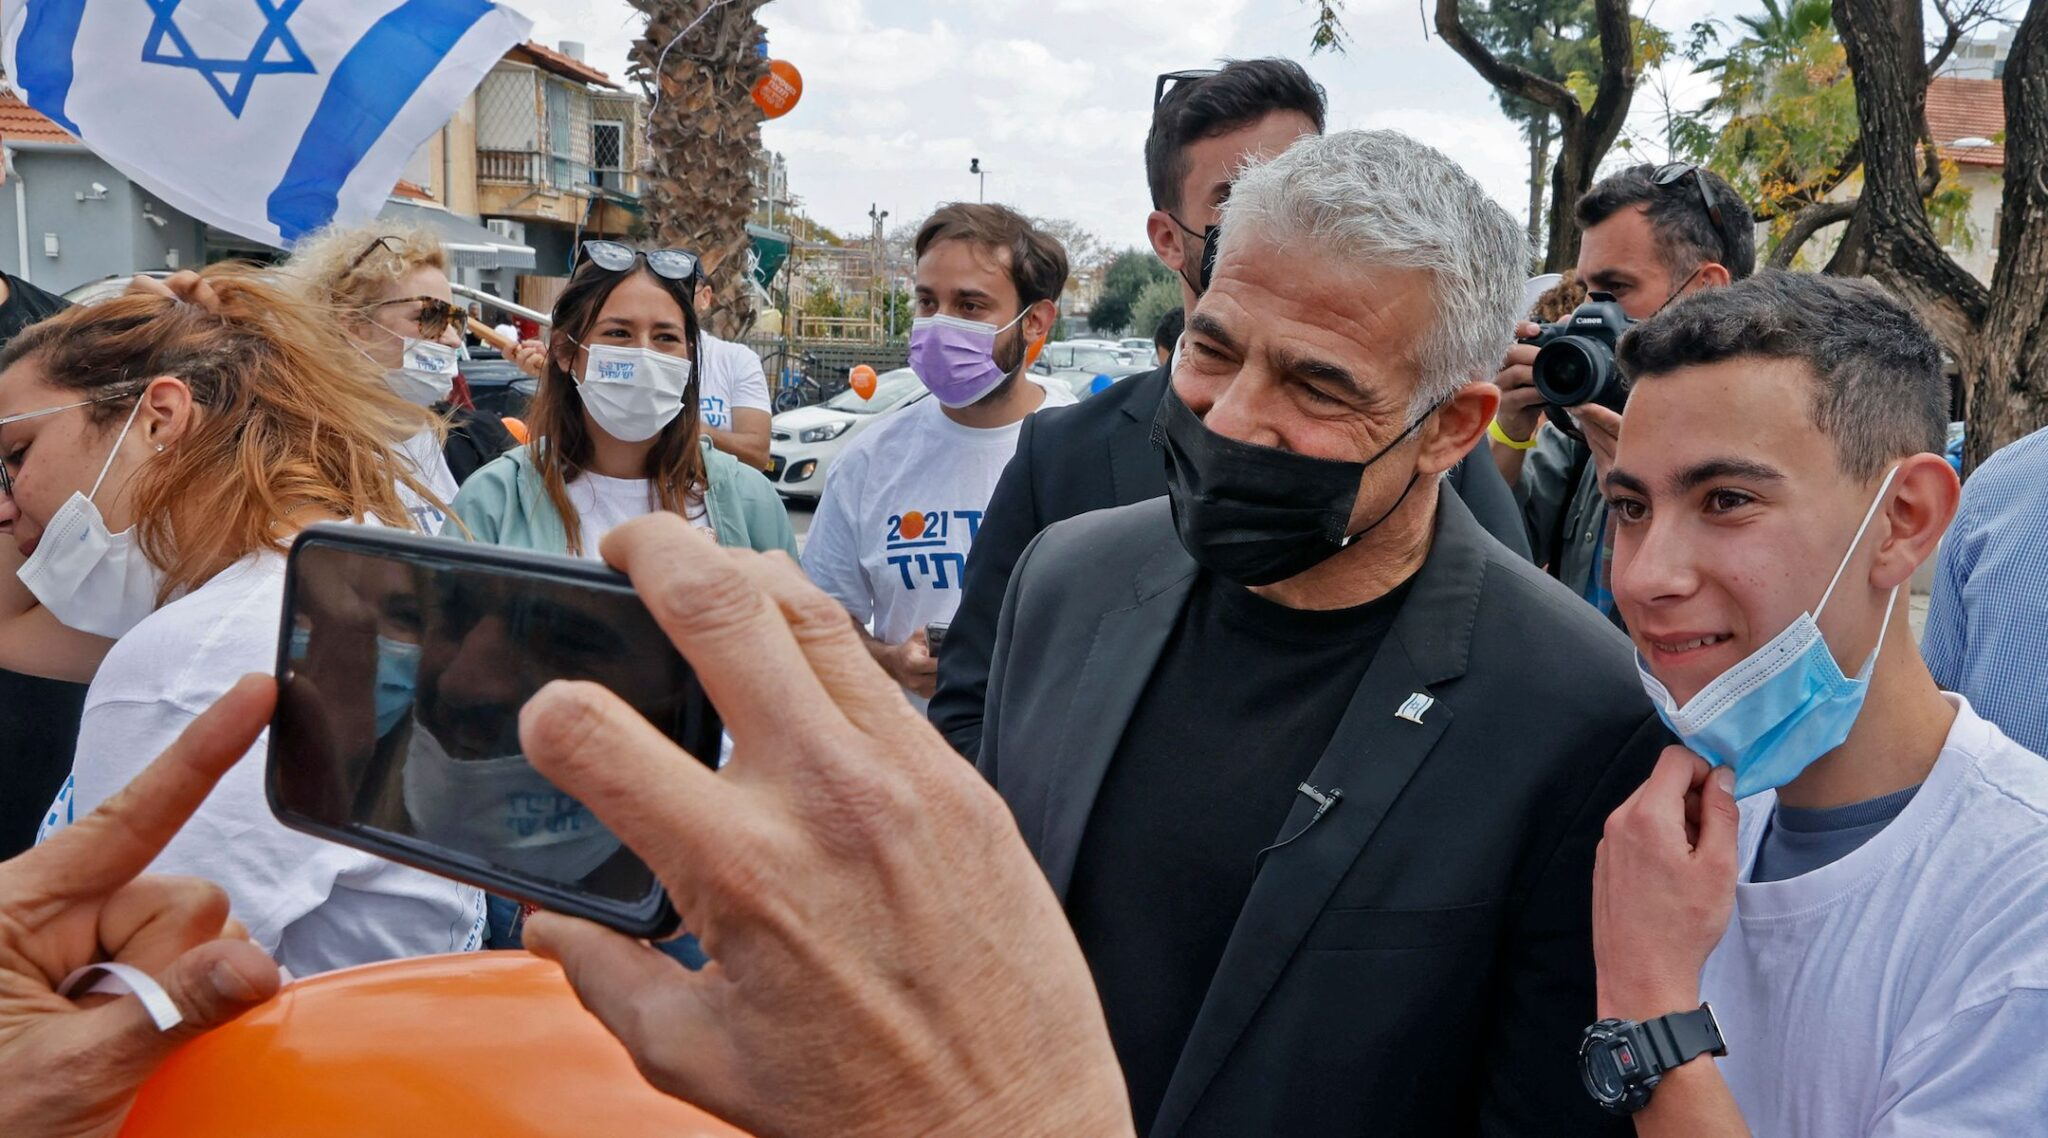 Yair Lapid campaigning in the Israeli city of Hod Hasharon in March (Photo/Jack Guez-AFP via Getty Images)